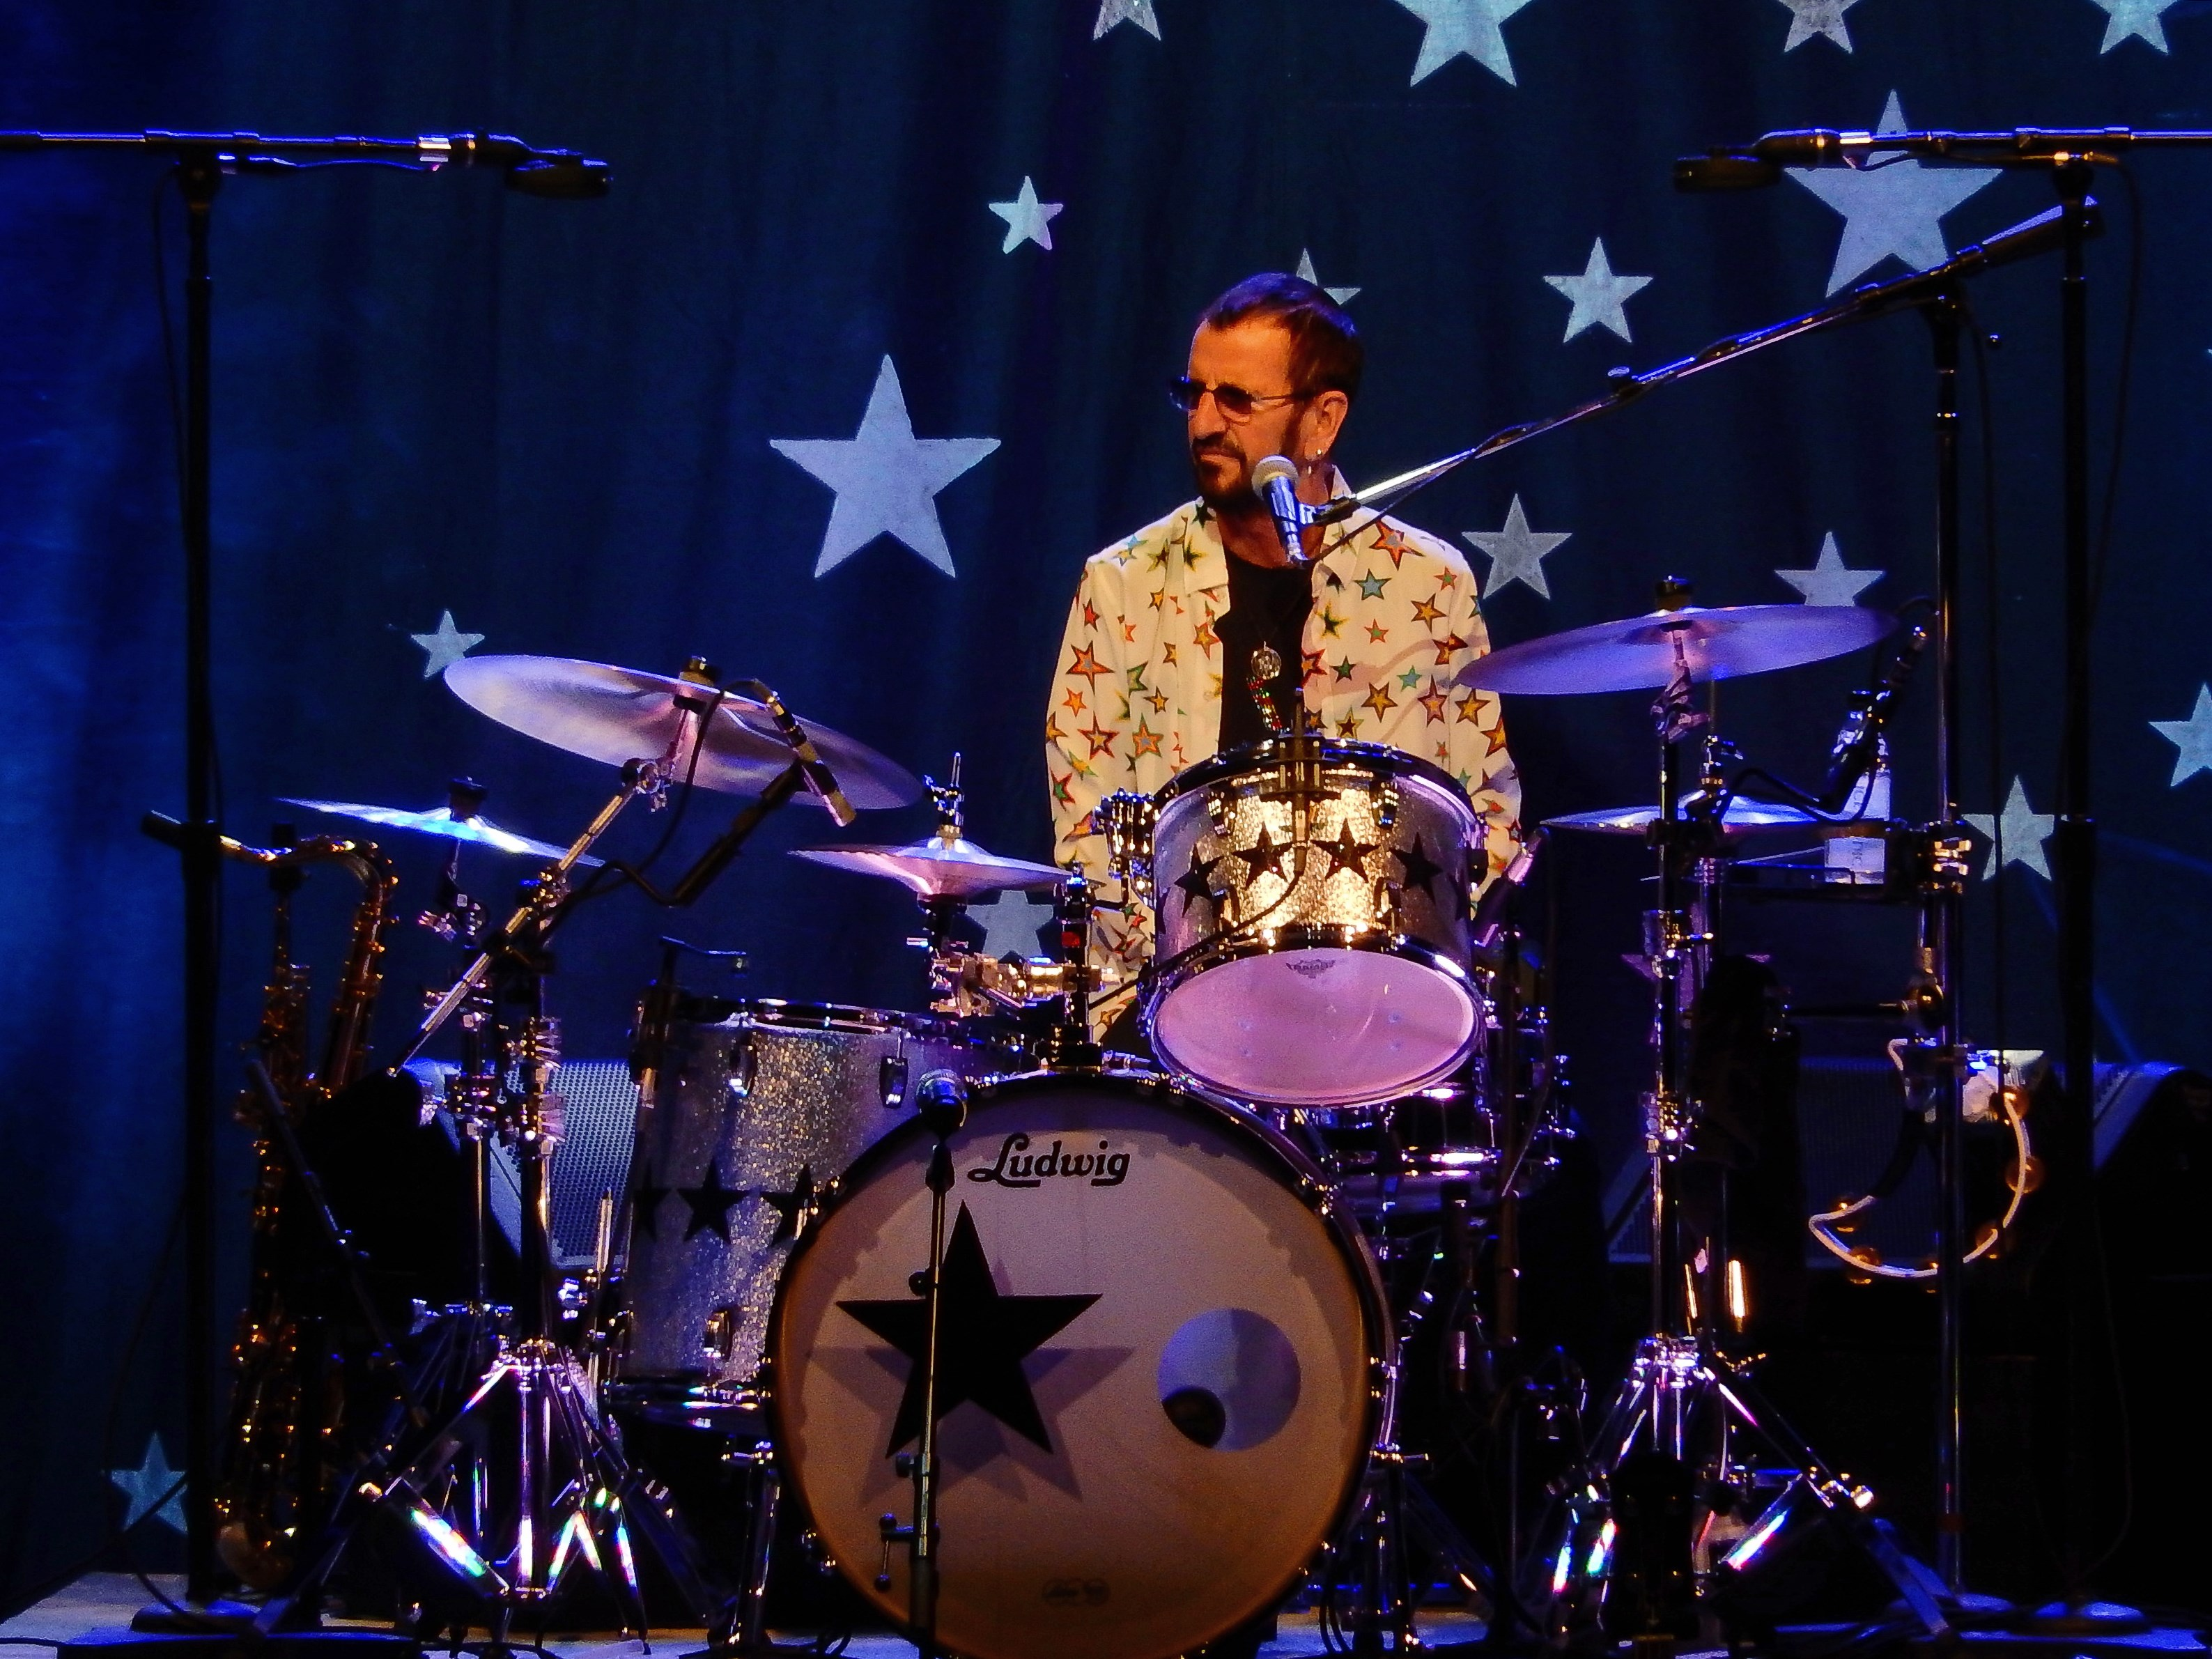 Ringo & His All Starr Band